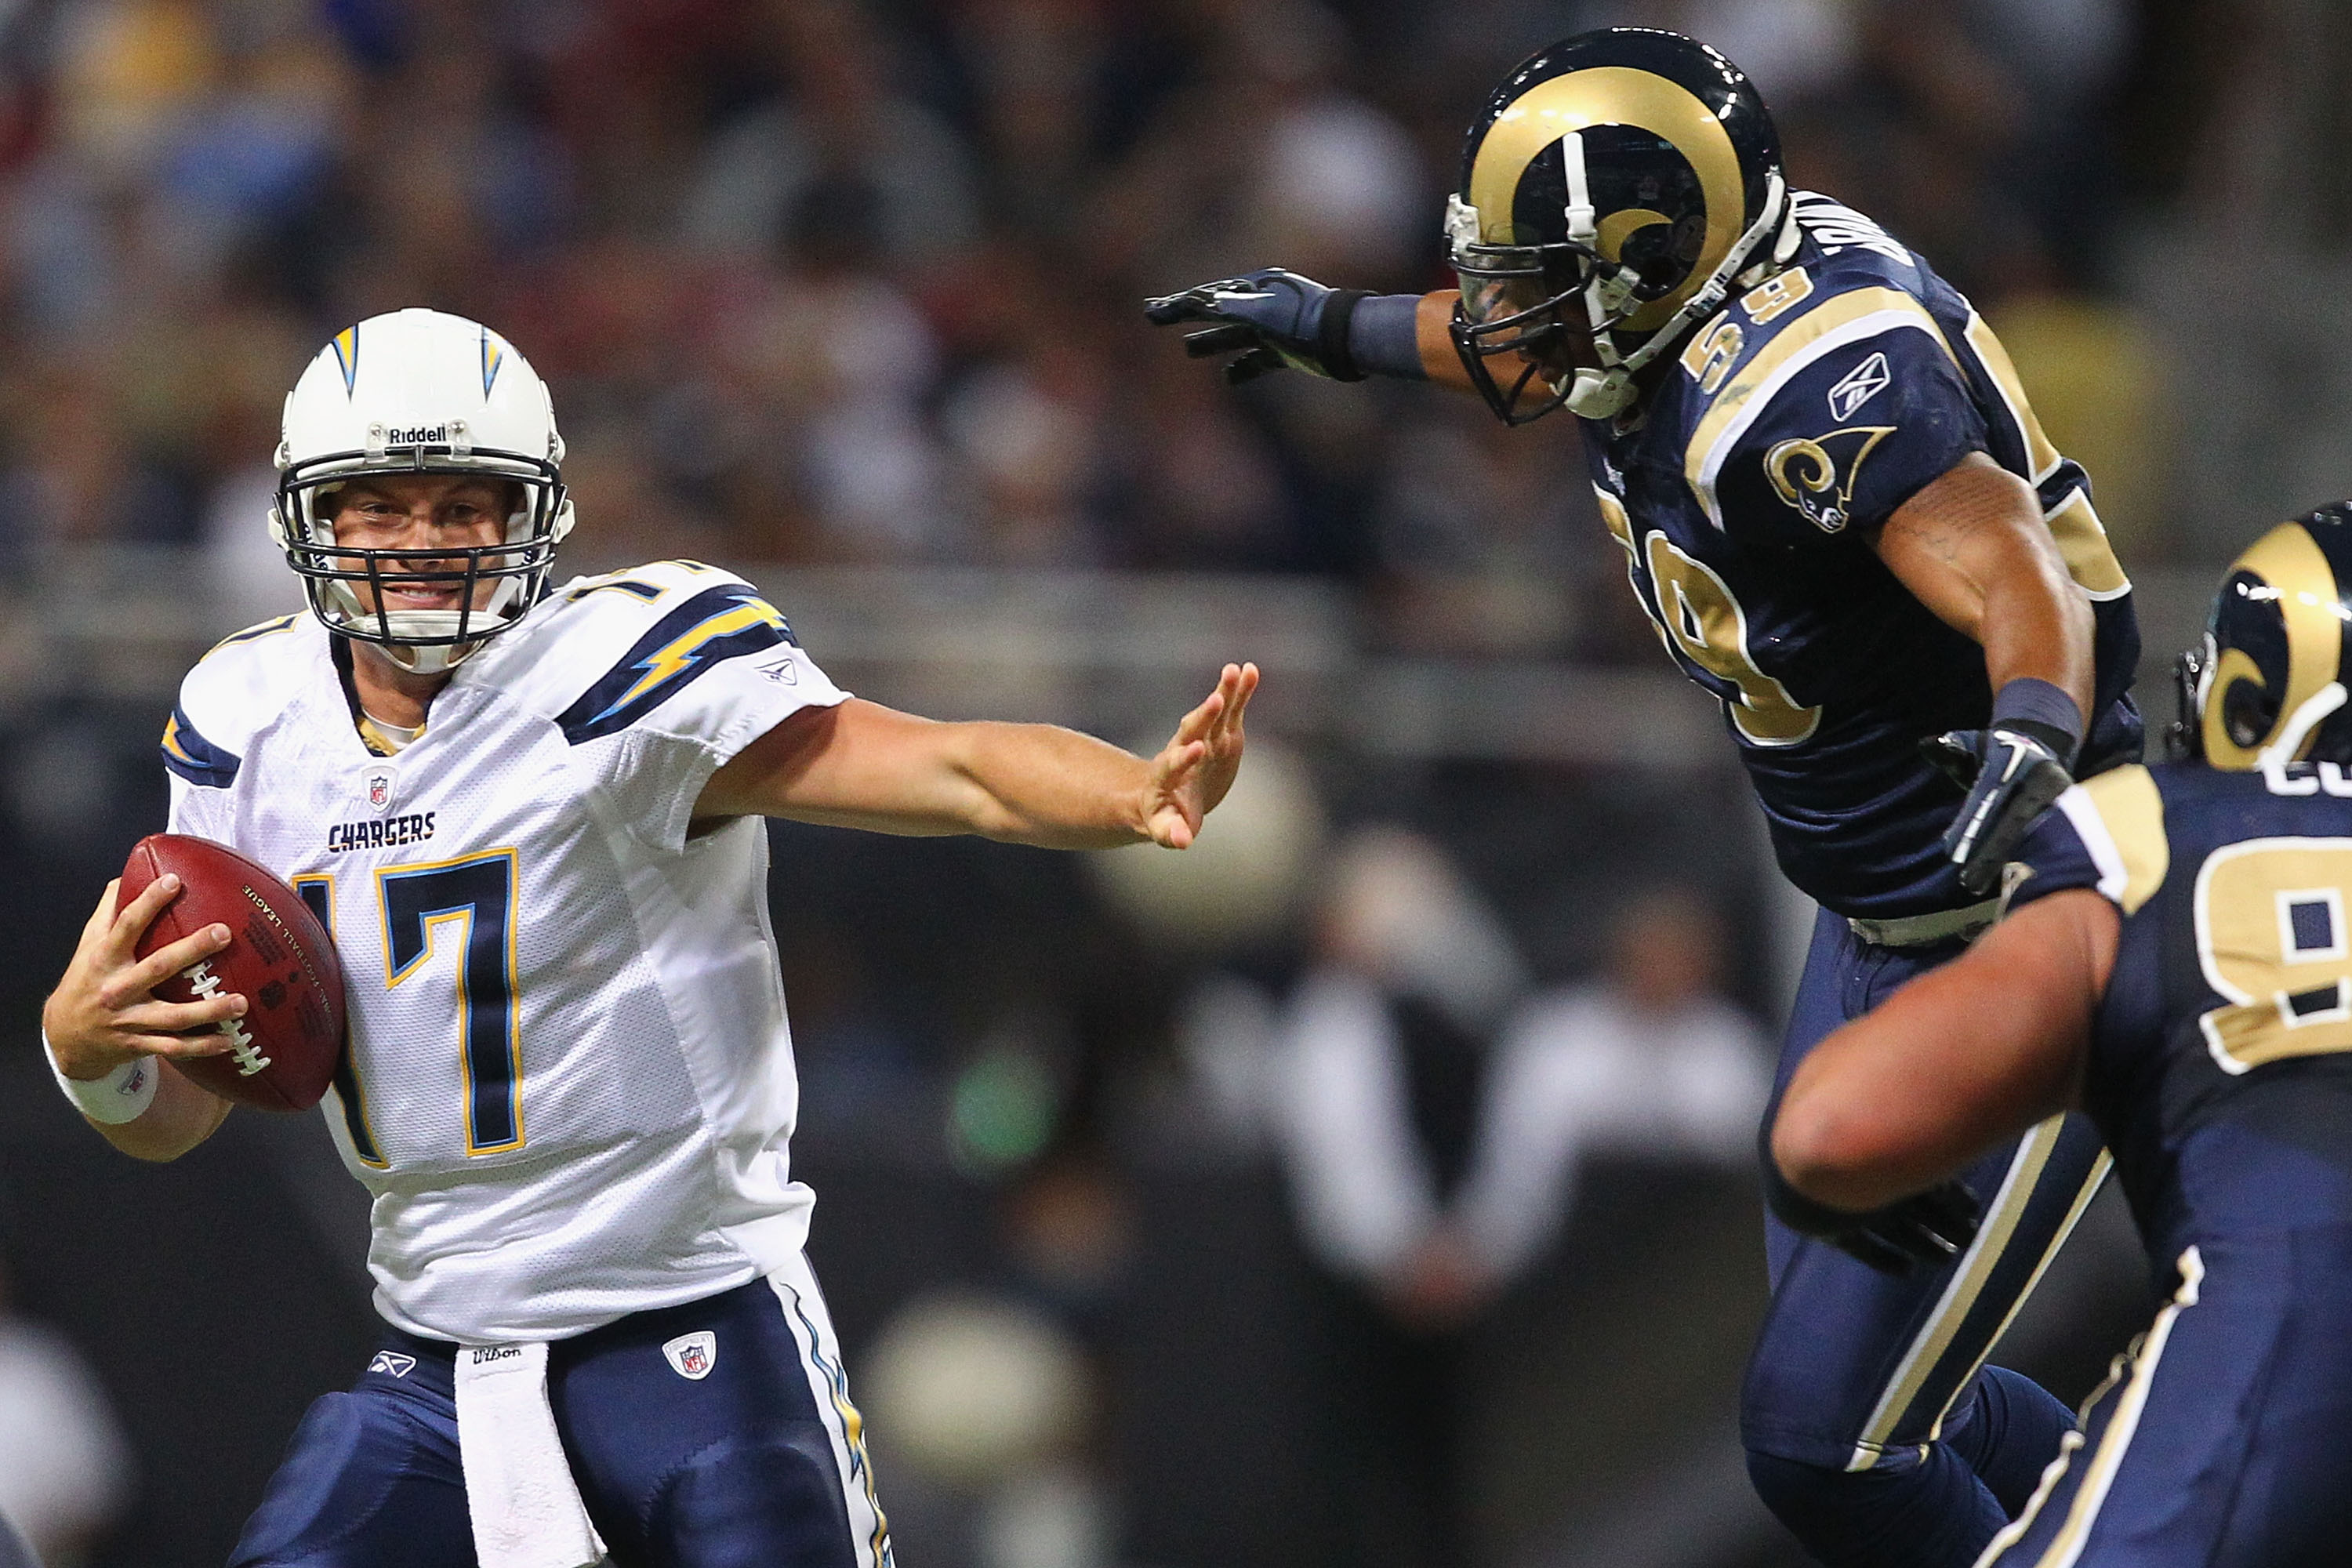 ST. LOUIS - OCTOBER 17: Philip Rivers #17 of the San Diego Chargers looks to avoid getting sacked by James Laurinaitis #55 of the St. Louis Rams at the Edward Jones Dome on October 17, 2010 in St. Louis, Missouri.  The Rams beat the Chargers 20-17.  (Phot